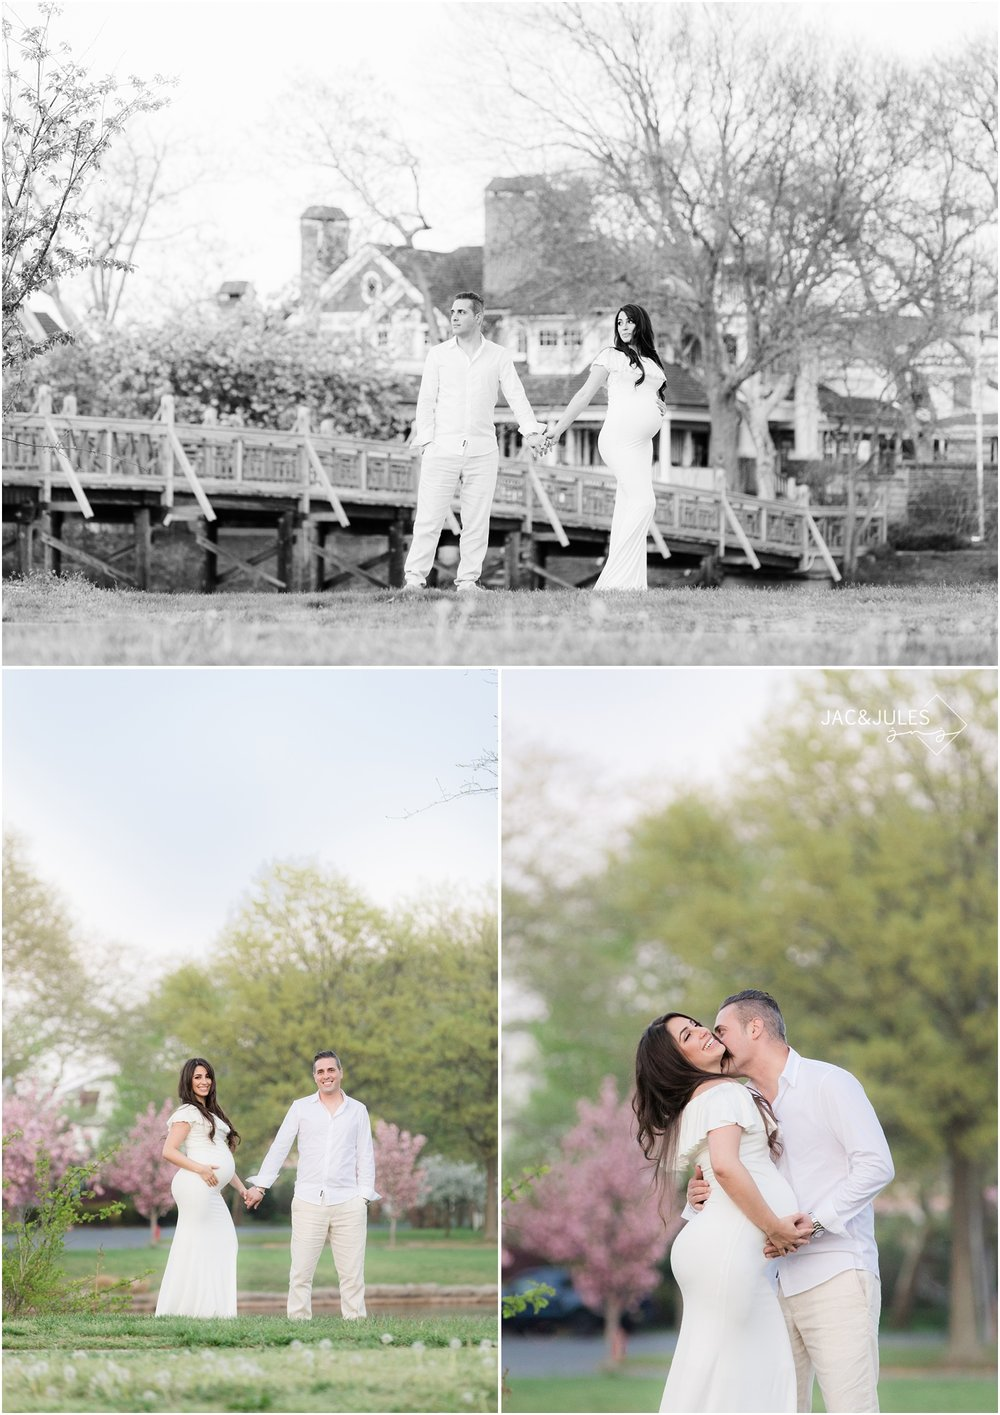 Cool maternity photos with cherry blossoms at Divine Park in Spring Lake, NJ.